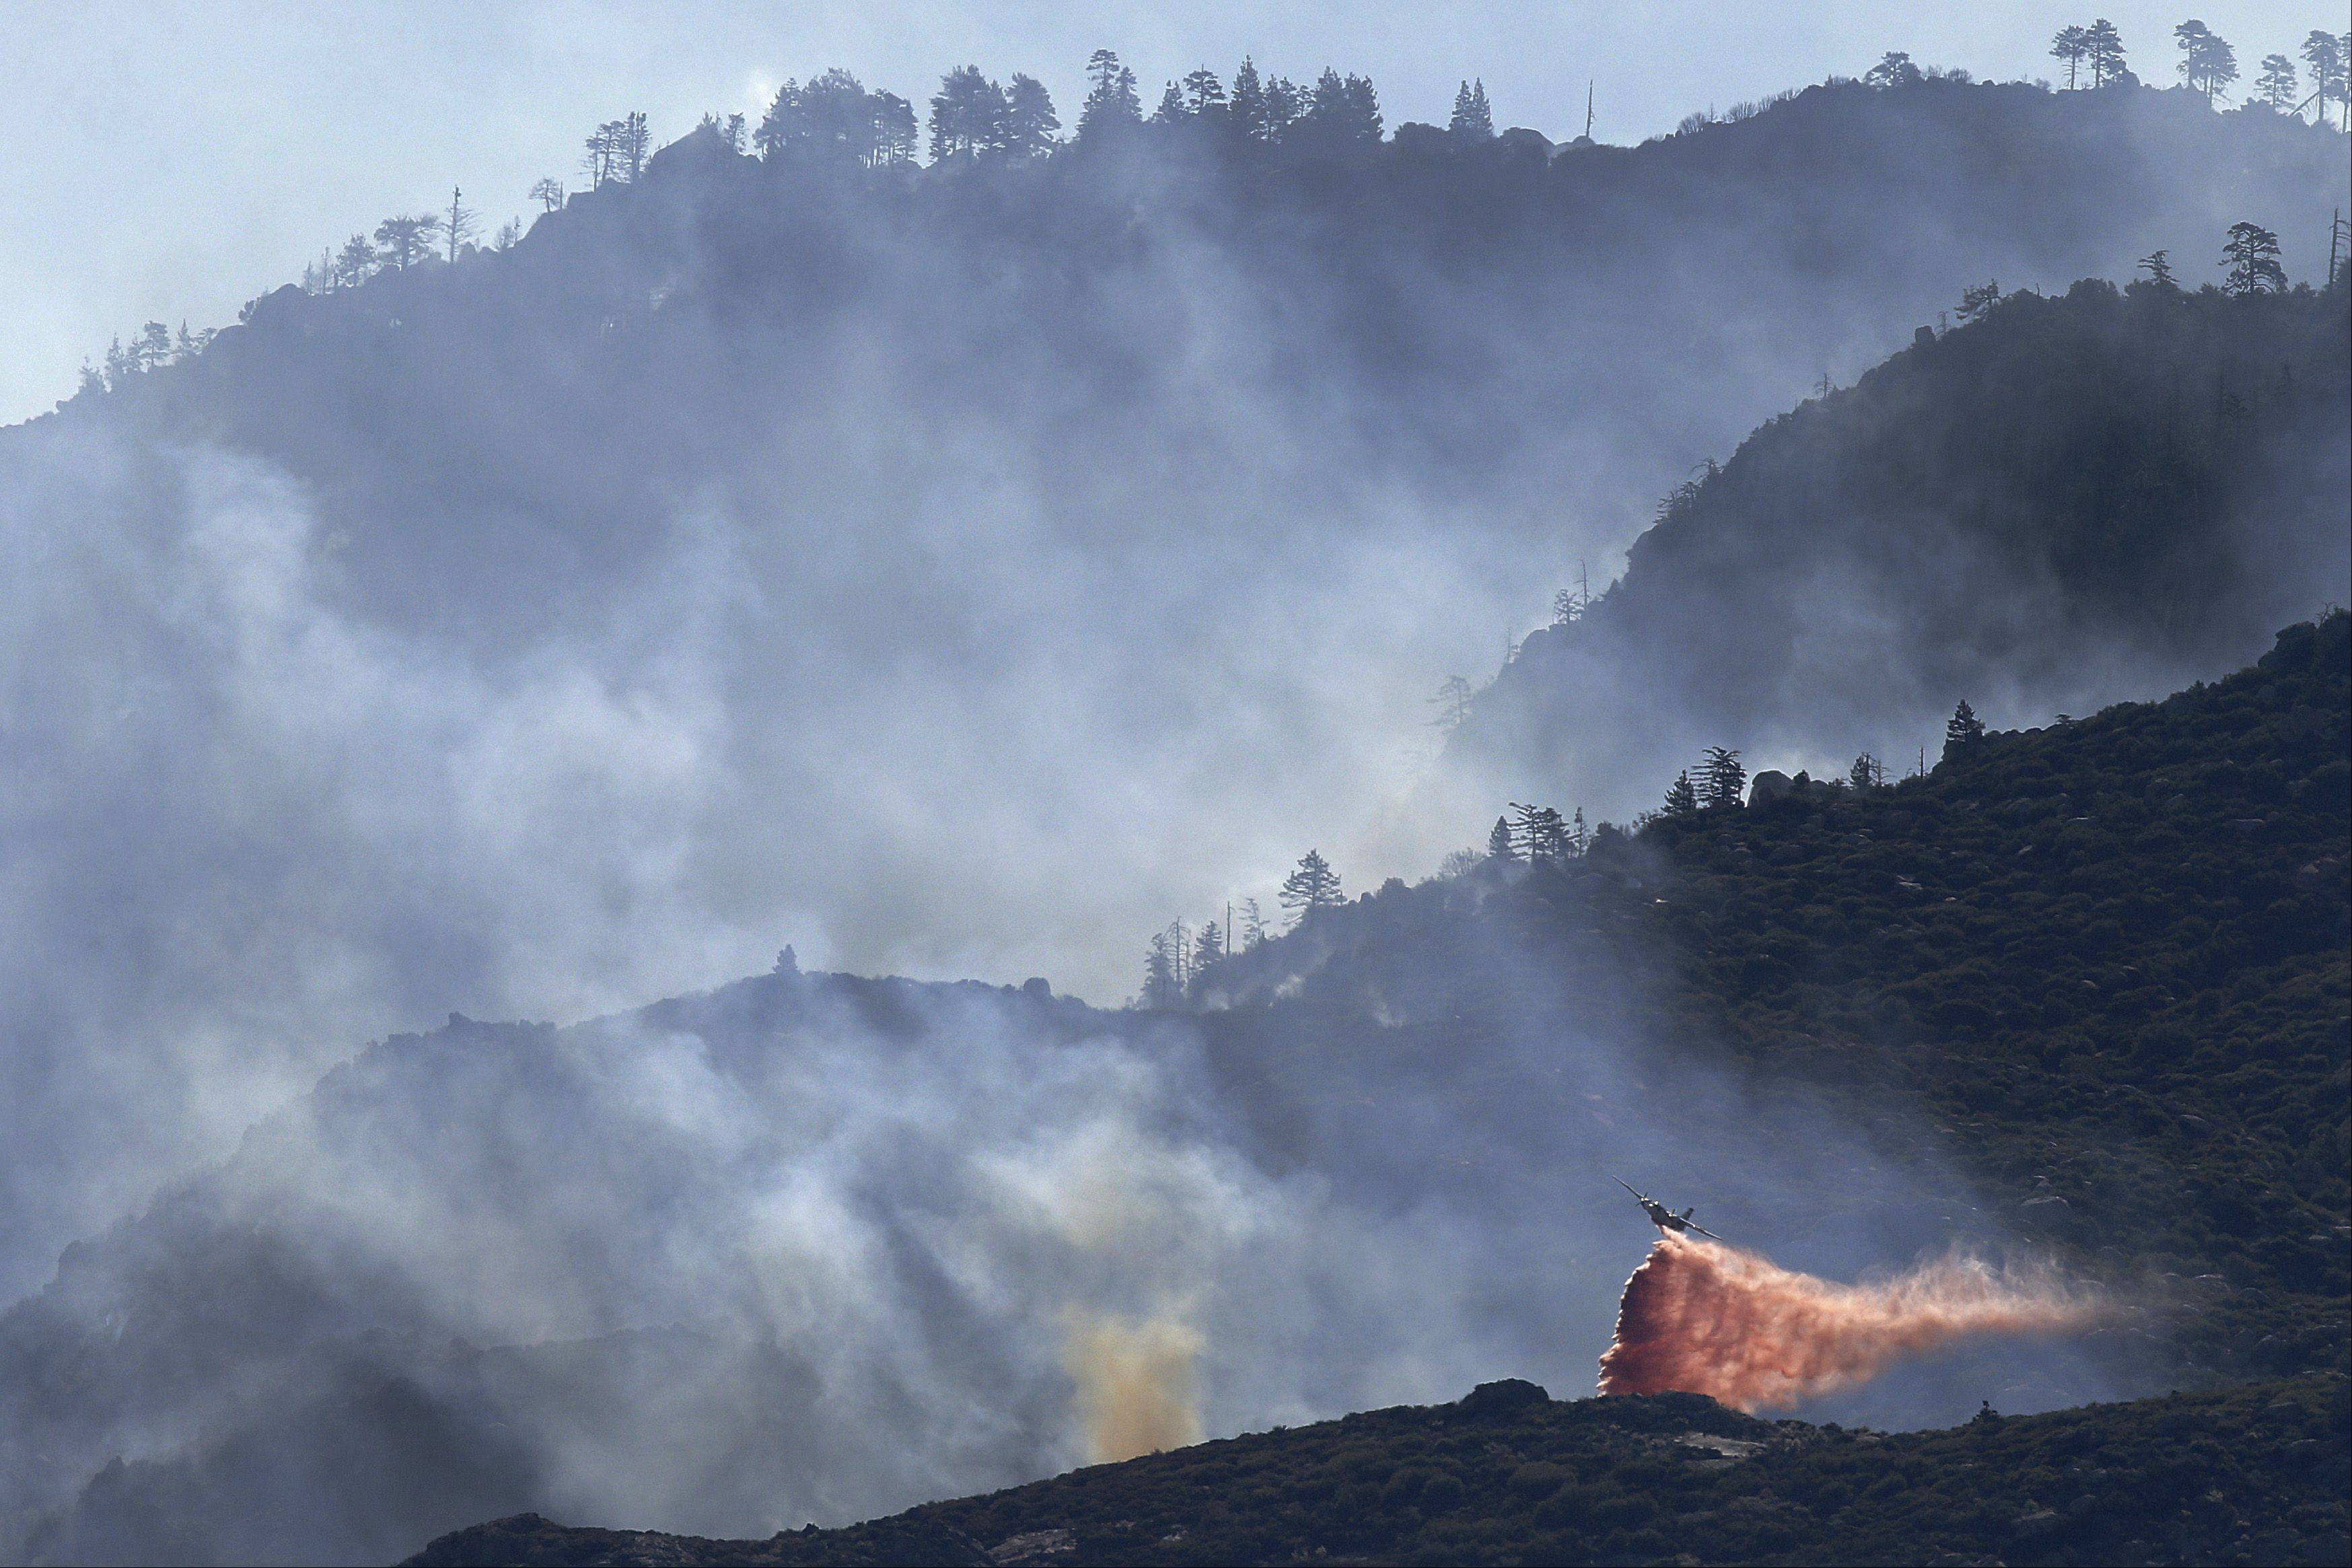 An air tanker drops fire retardant on a hot spot as firefighters continue to battle a wildfire on Friday, Aug. 9, 2013, near Banning, Calif.